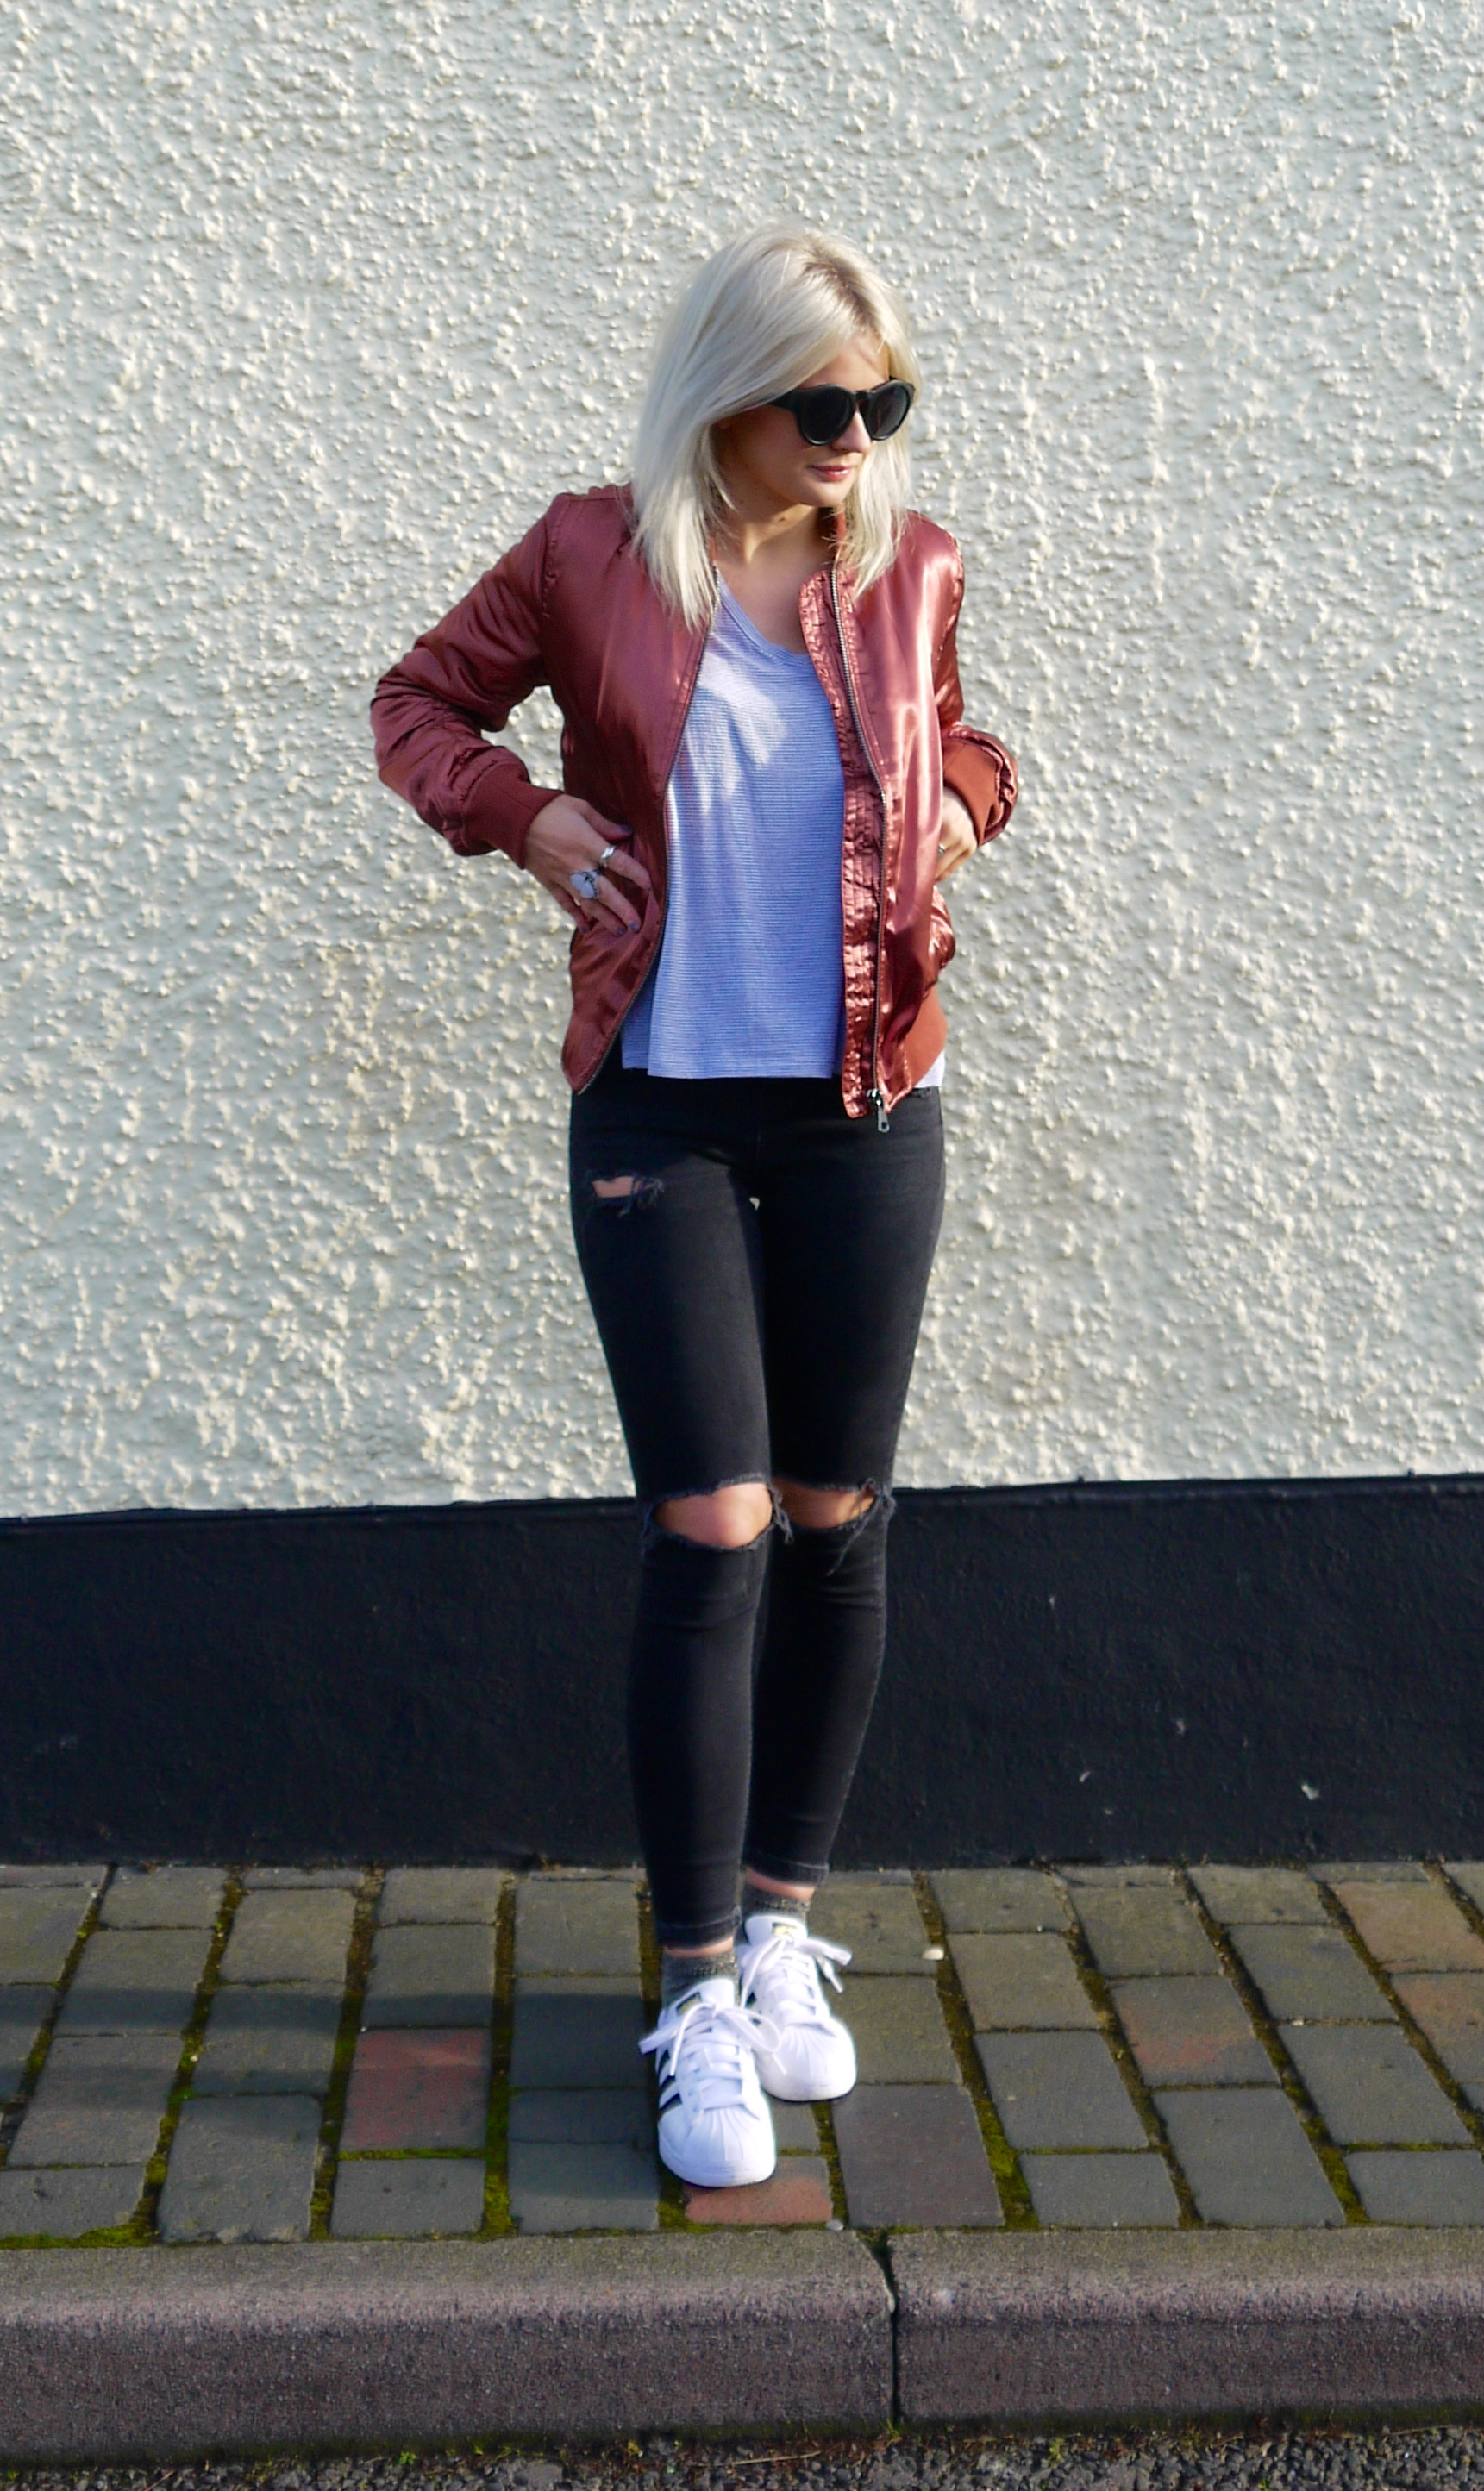 TOPSHOP ROSE GOLD BOMBER JACKET, BOMBER JACKET, LAURA BYRNES, LAURAS LITTLE LOCKED, BLACK RIPPED JEANS, ADDIDAS SUPERSTAR TRAINERS, ASH BLONDE HAIR,